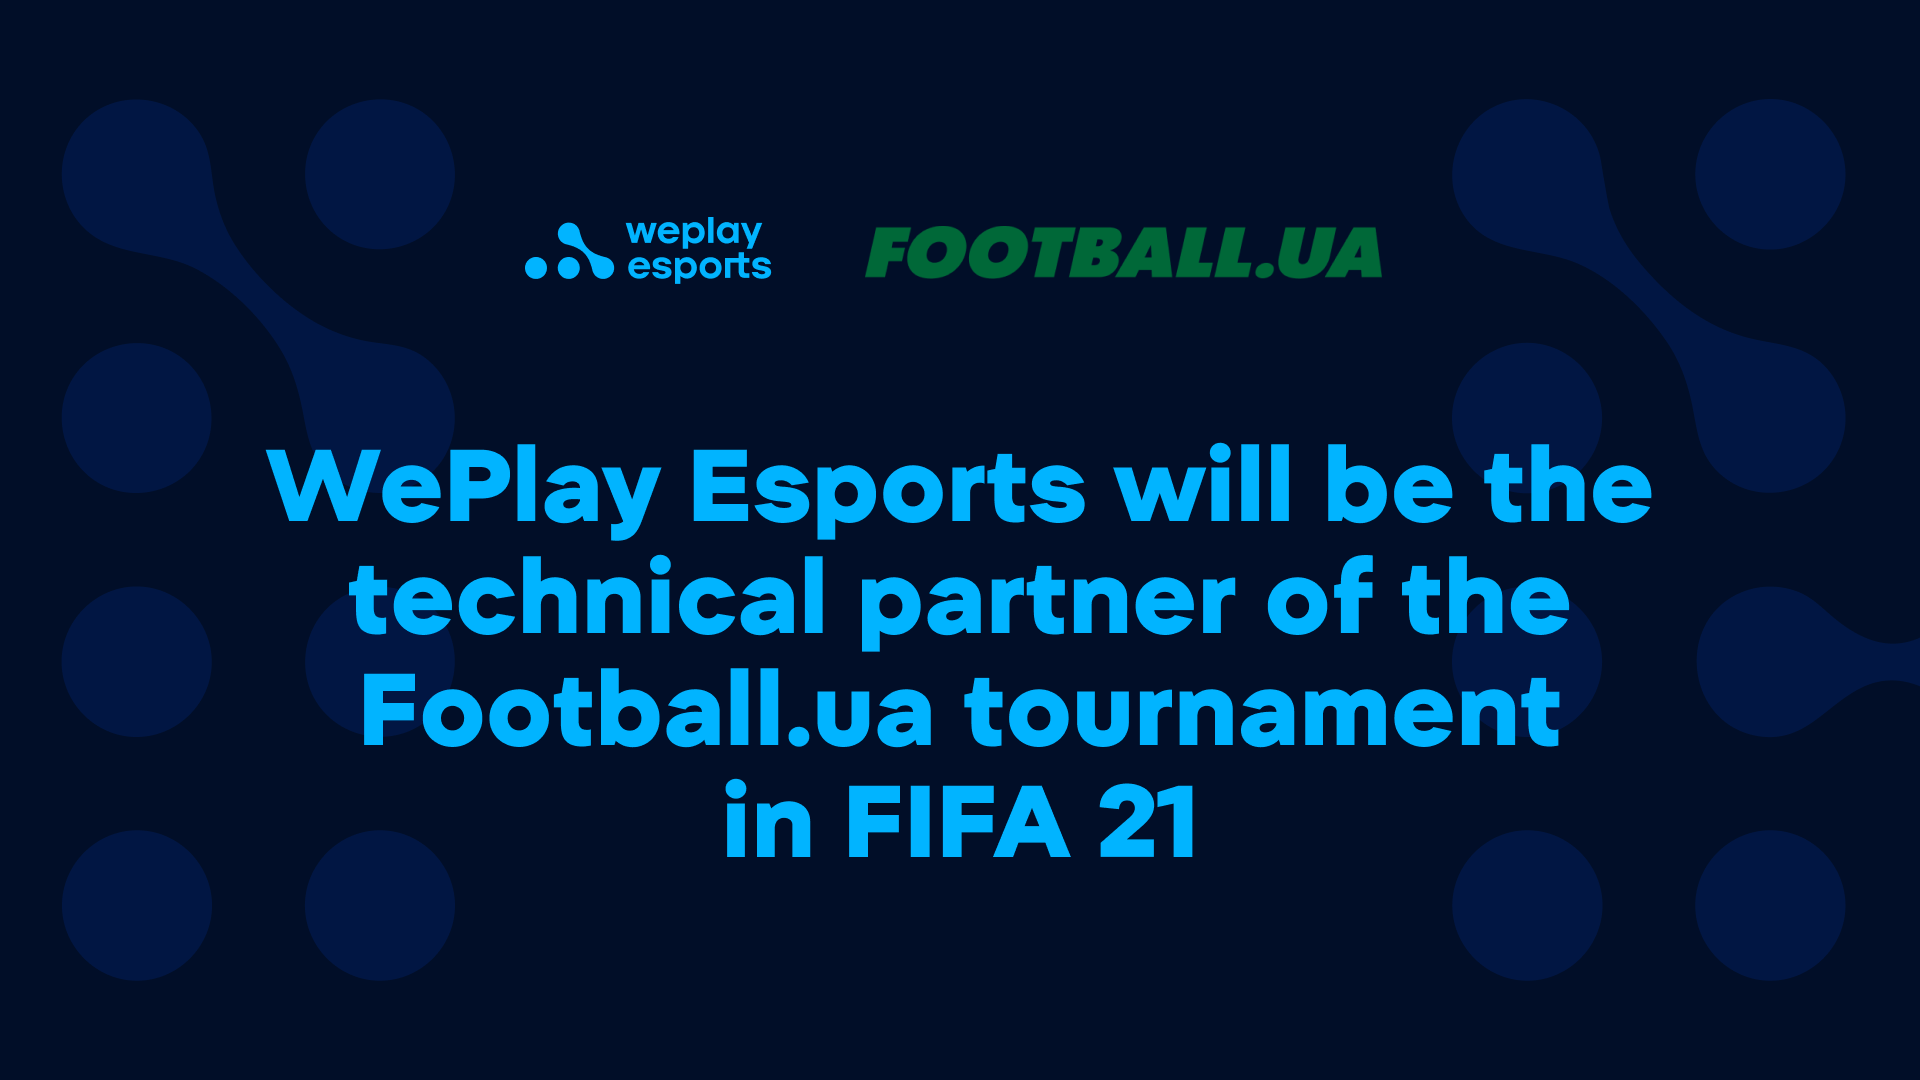 WePlay Esports will be the technical partner of the Football.ua tournament in FIFA 21. Image: WePlay Holding